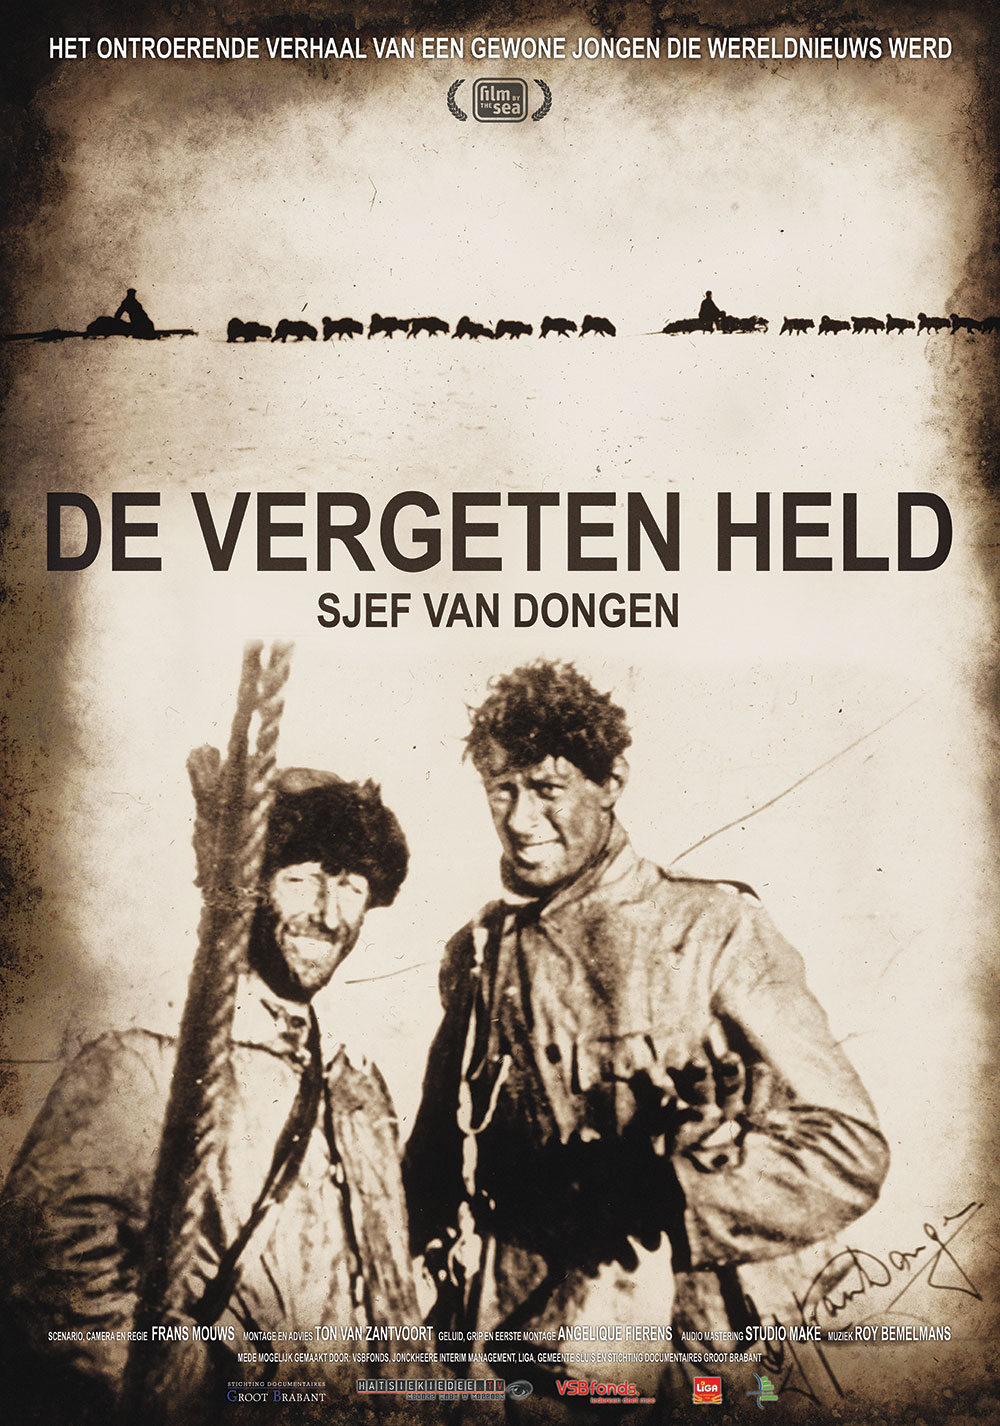 de-vergeten-held-sjef-van-dongen-documentaire-poster